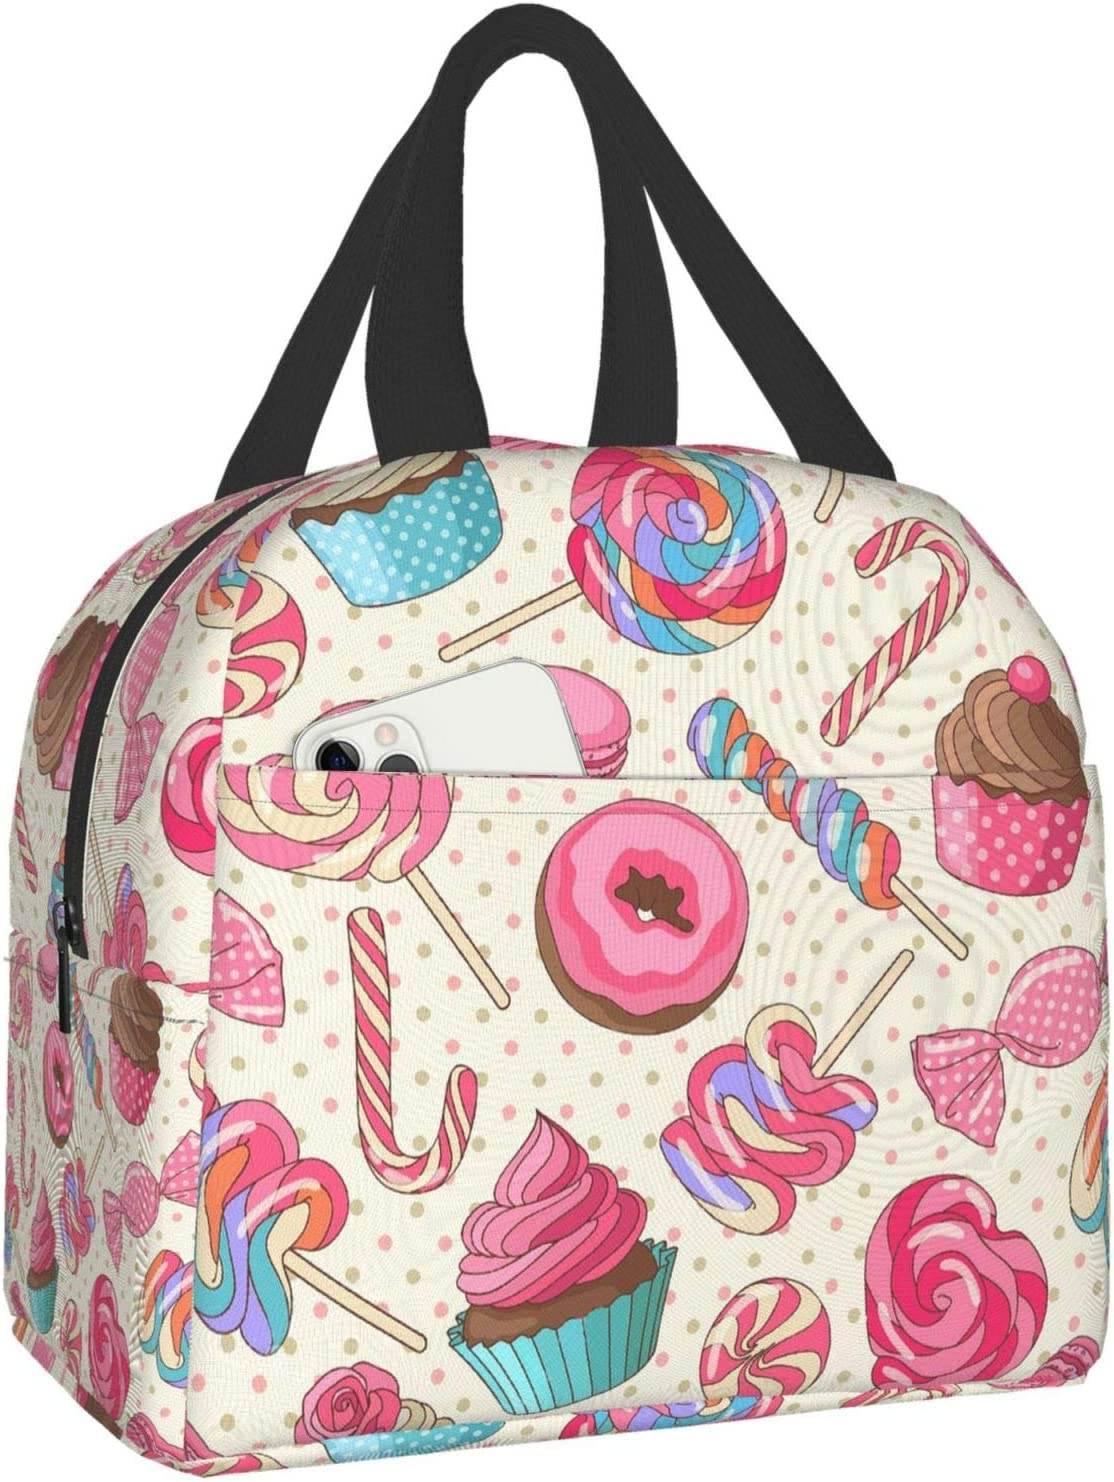 Colorful Sweet Lollipop Candy Macaroon Cupcake Donut Insulated Lunch Bag Tote Bag with Front Pockets Lunch Box Leakproof Lunch Container for Men & Women to Office Work School Picnic